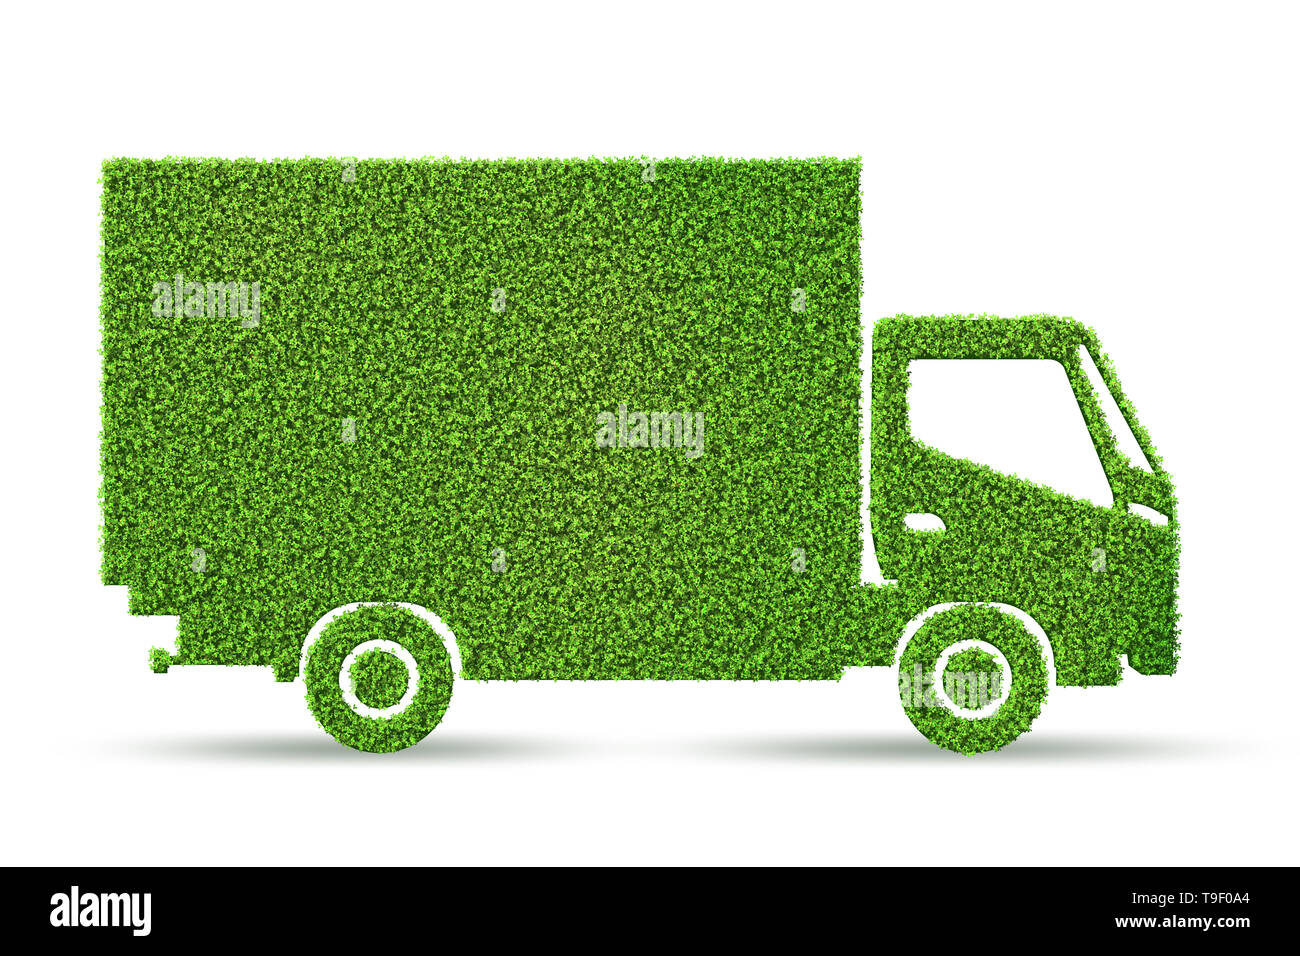 Green low emission electic vehicle concept - 3d rendering - Stock Image